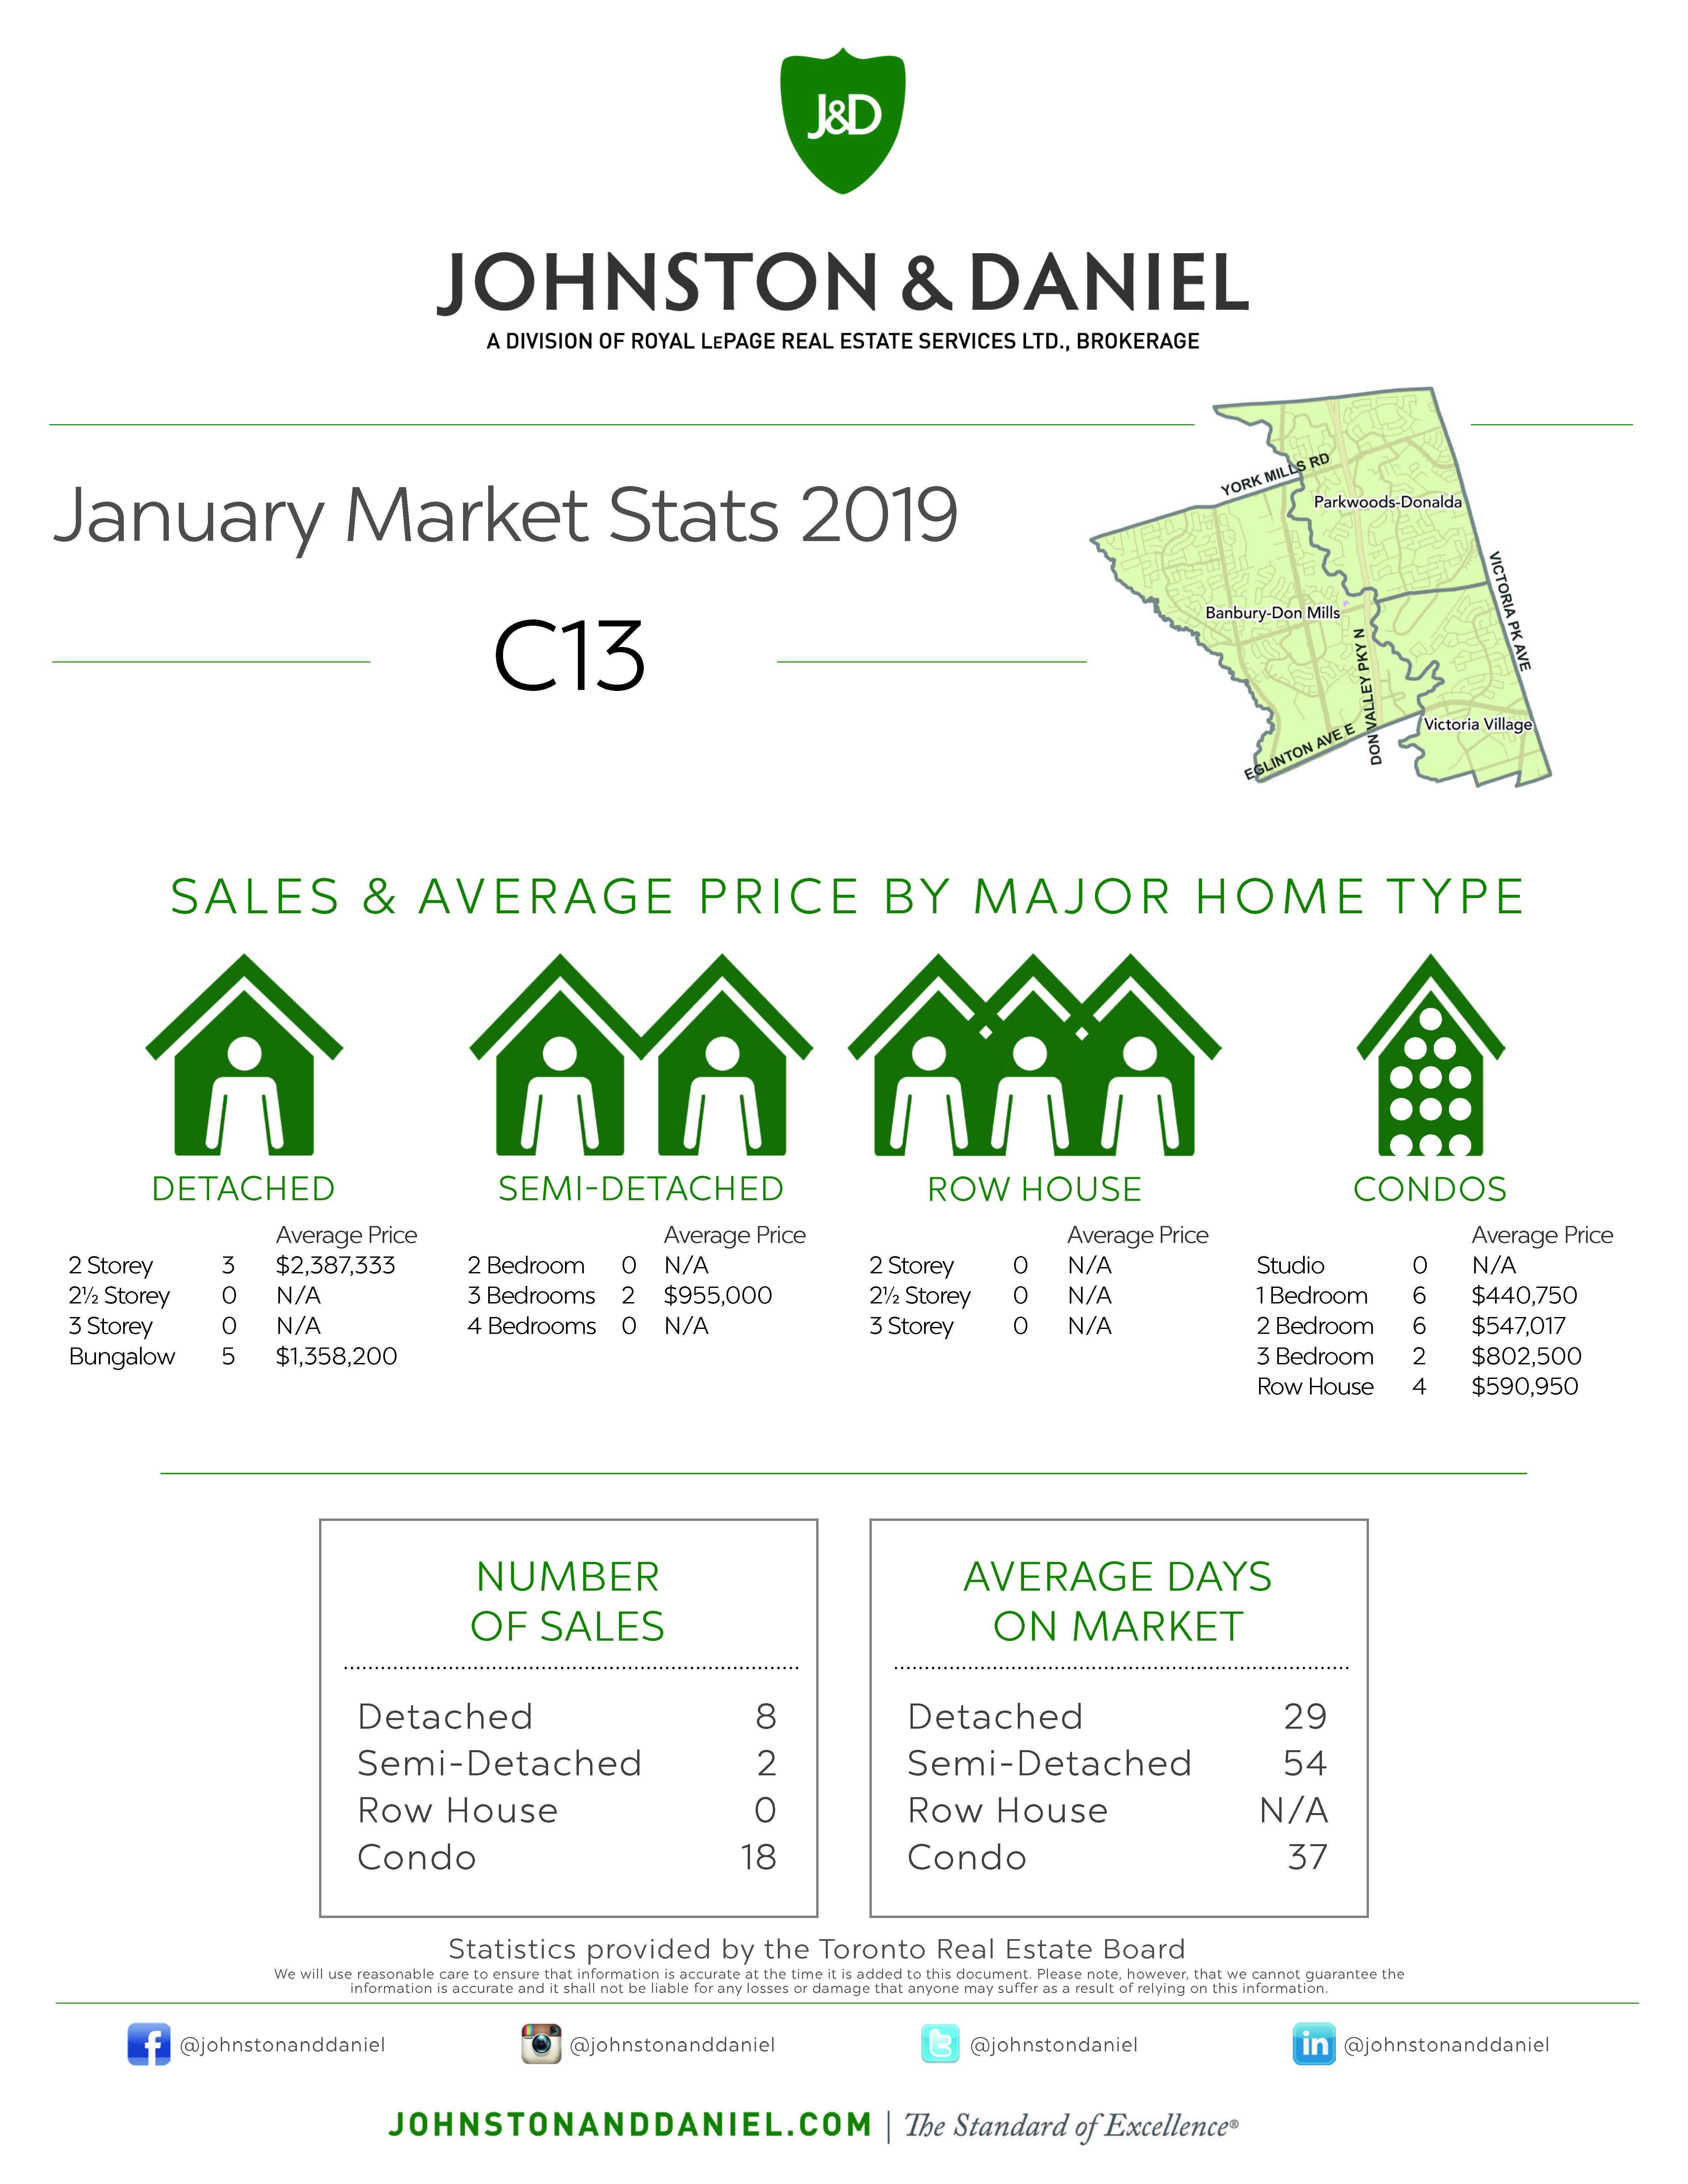 Toronto Real Estate Sales Statistics January 2019 for Area C13